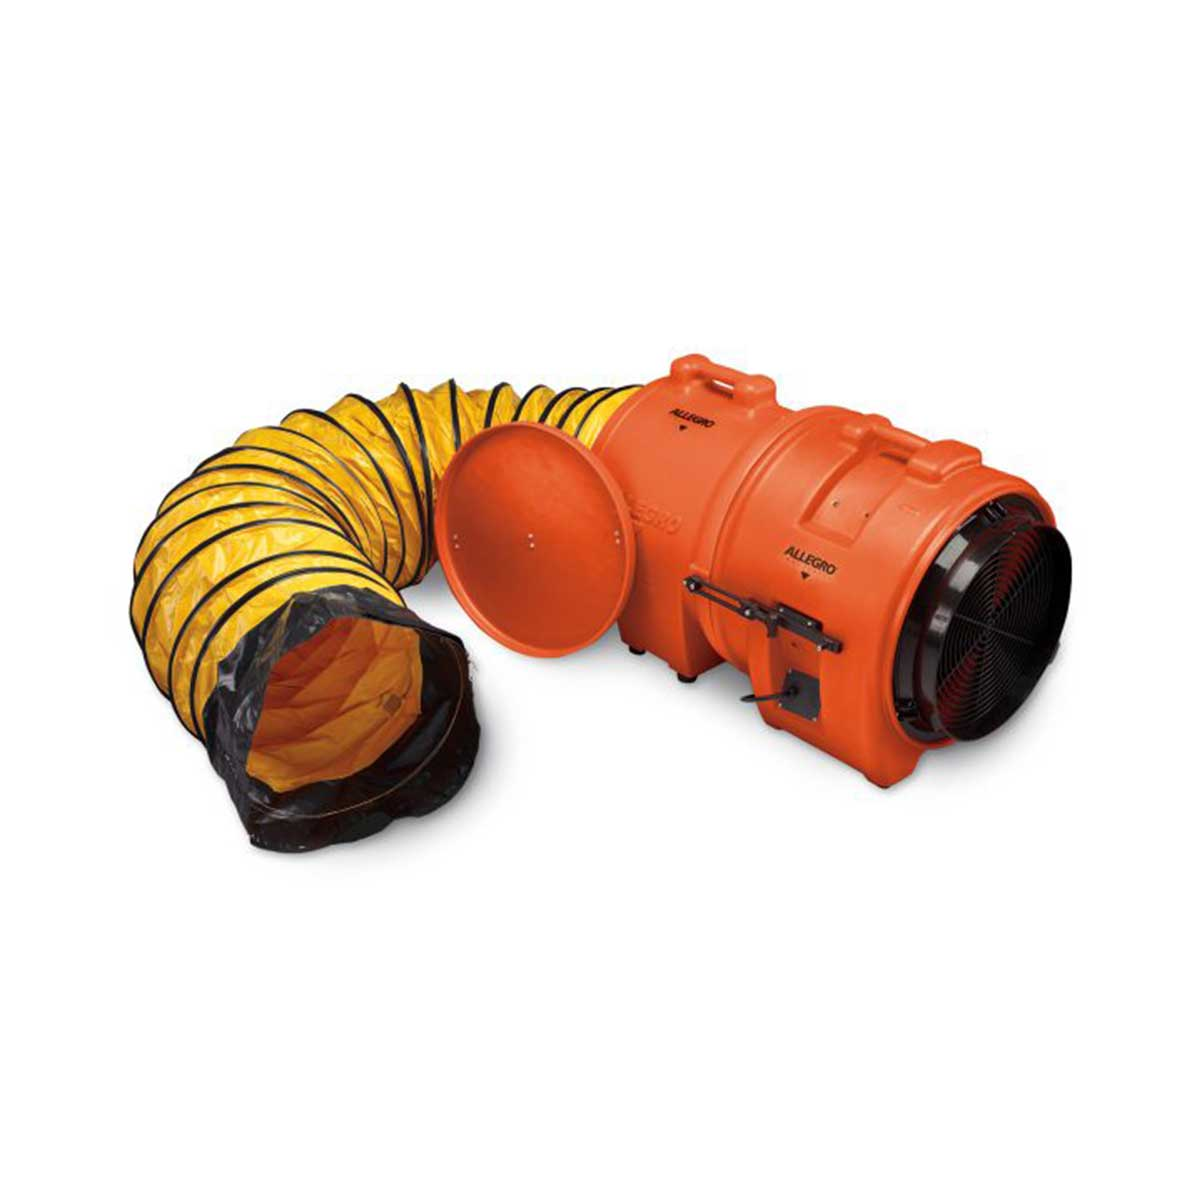 16″ Axial DC Plastic Blower w/ Canister & 25′ Ducting, 12V. Part: ALL-9556-25. Pkg: 1